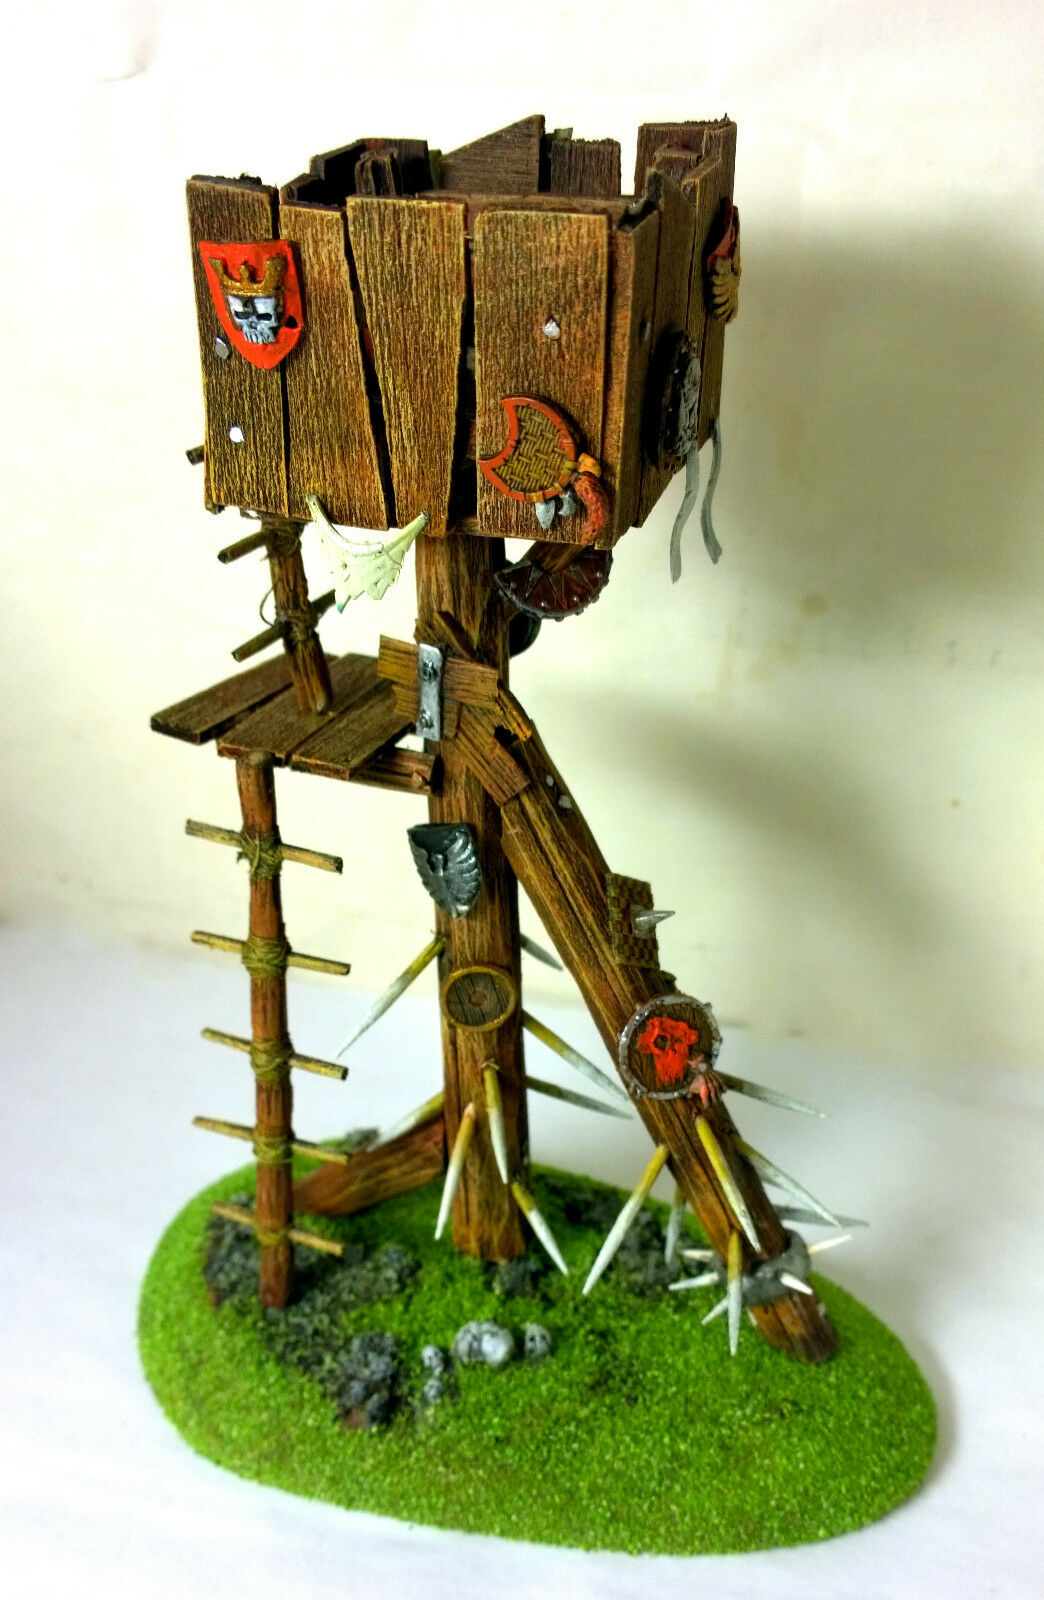 WARHAMMER ORCS AND GOBLINS SCENERY   regarder TOWER  PRO PAINTED  vente directe d'usine